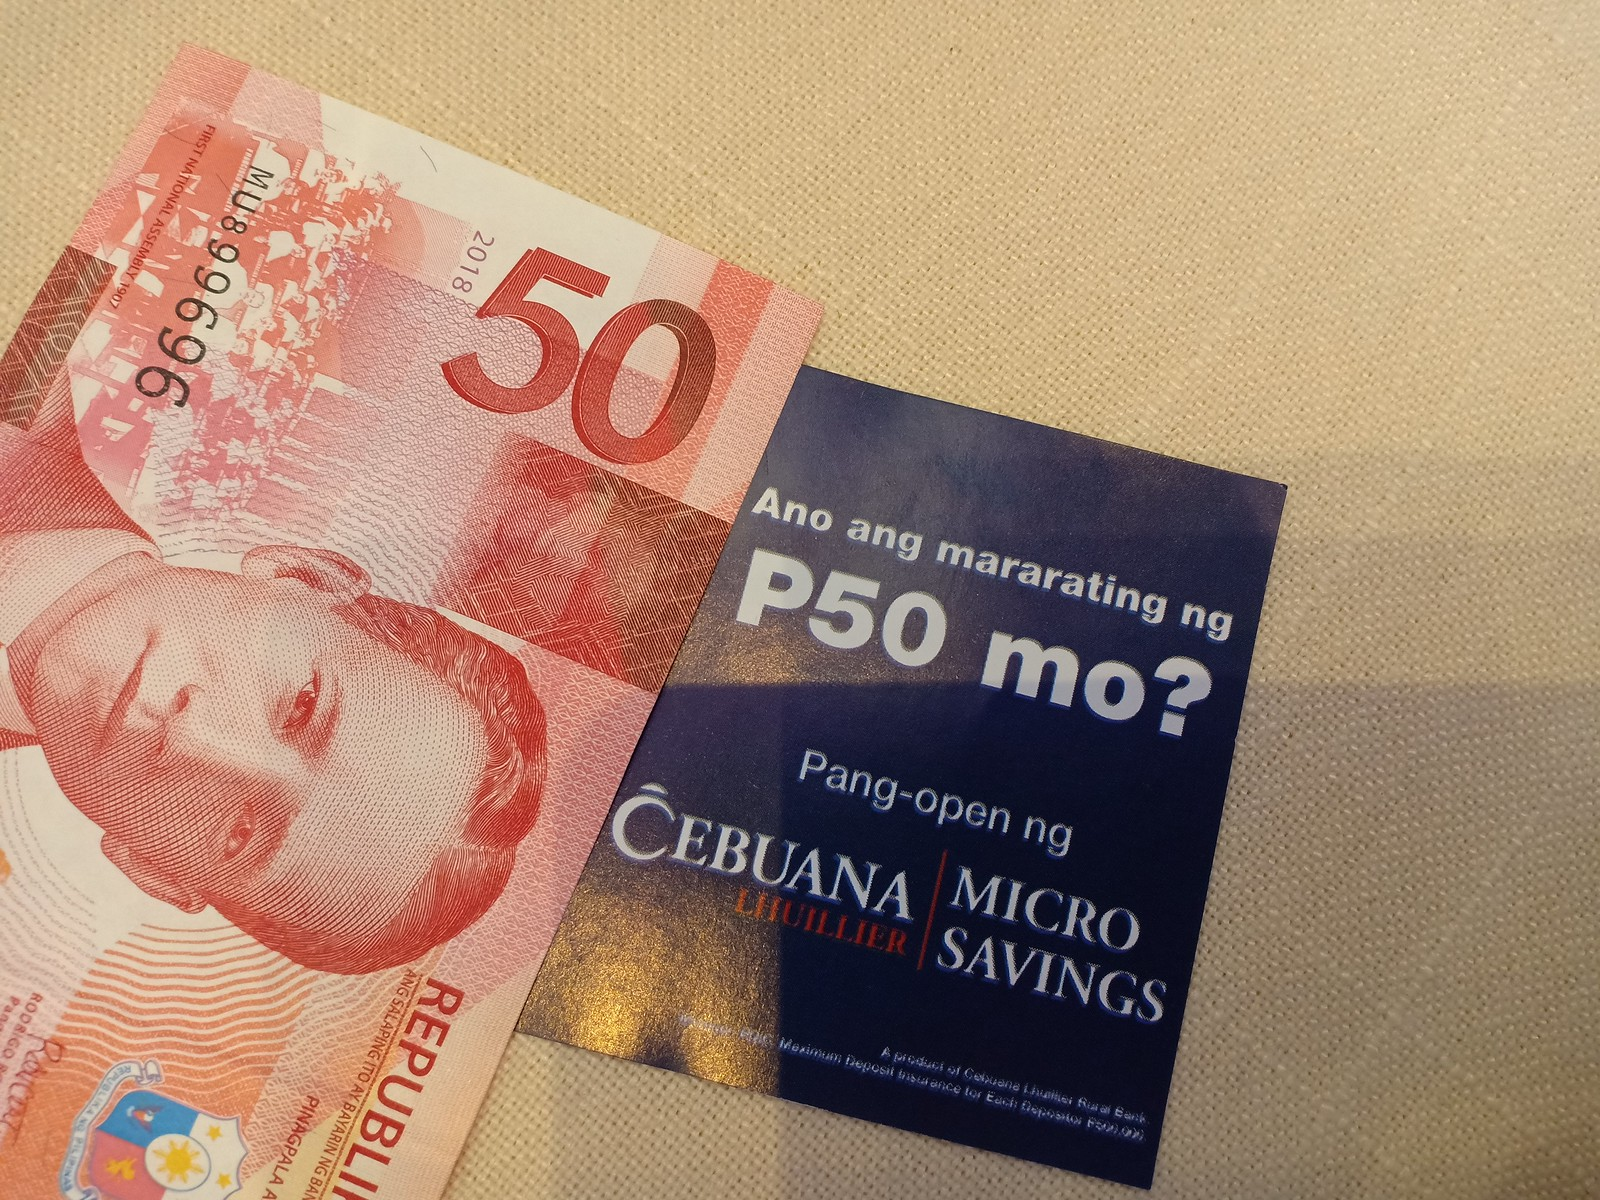 cebuana lhuillier micro savings